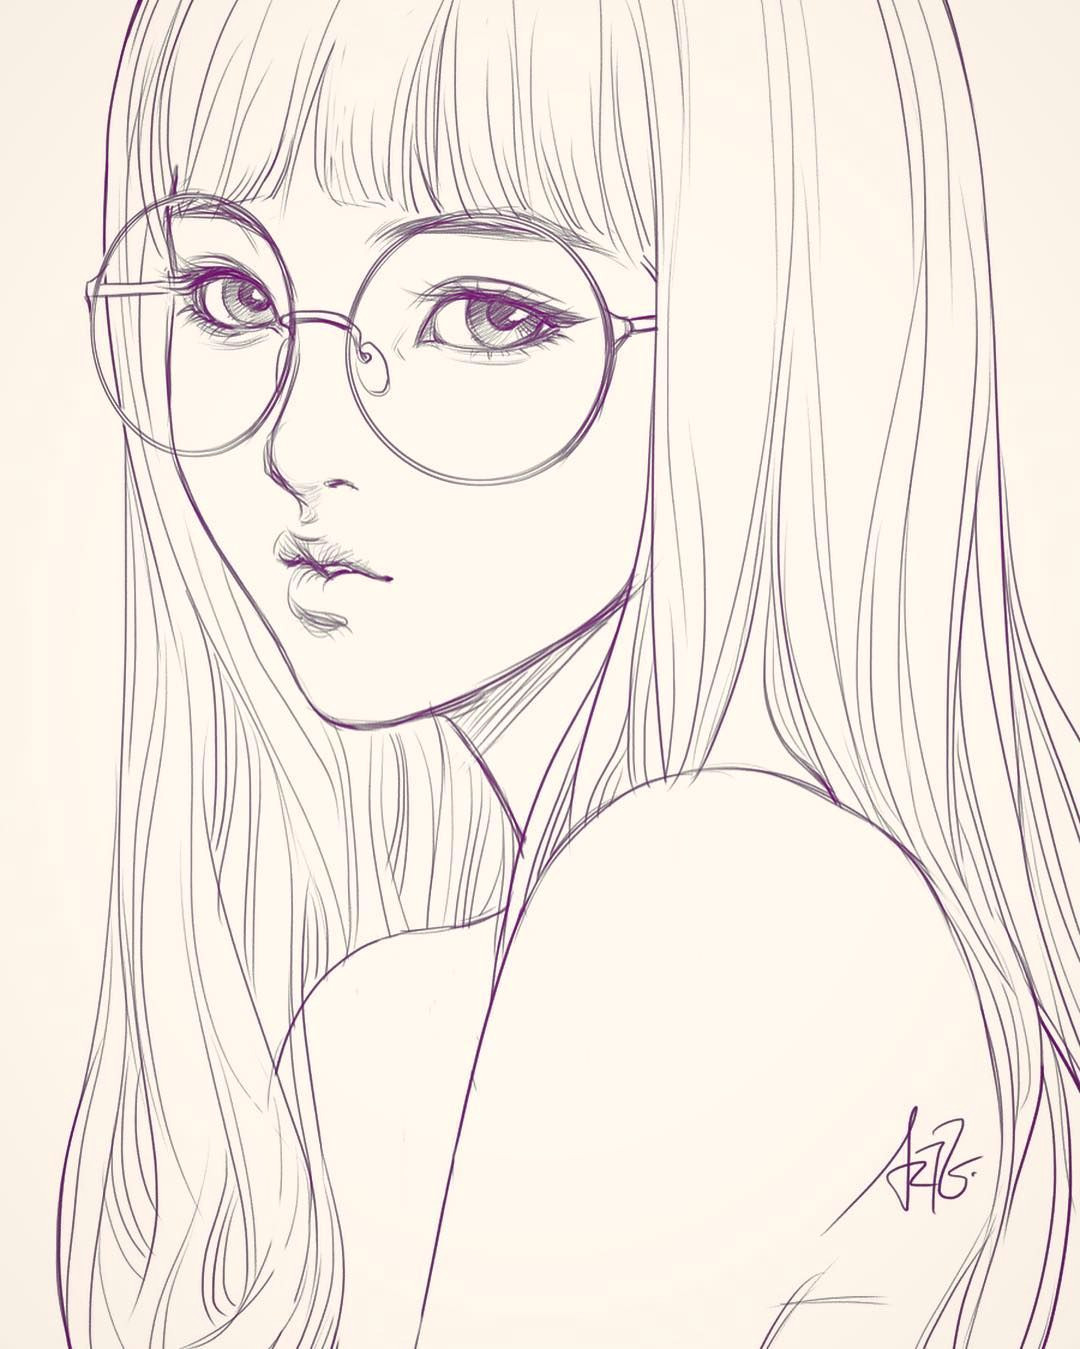 Girl Drawing Night Last Sketch Of Girl with Glasses Having Bad Backache It Hurts